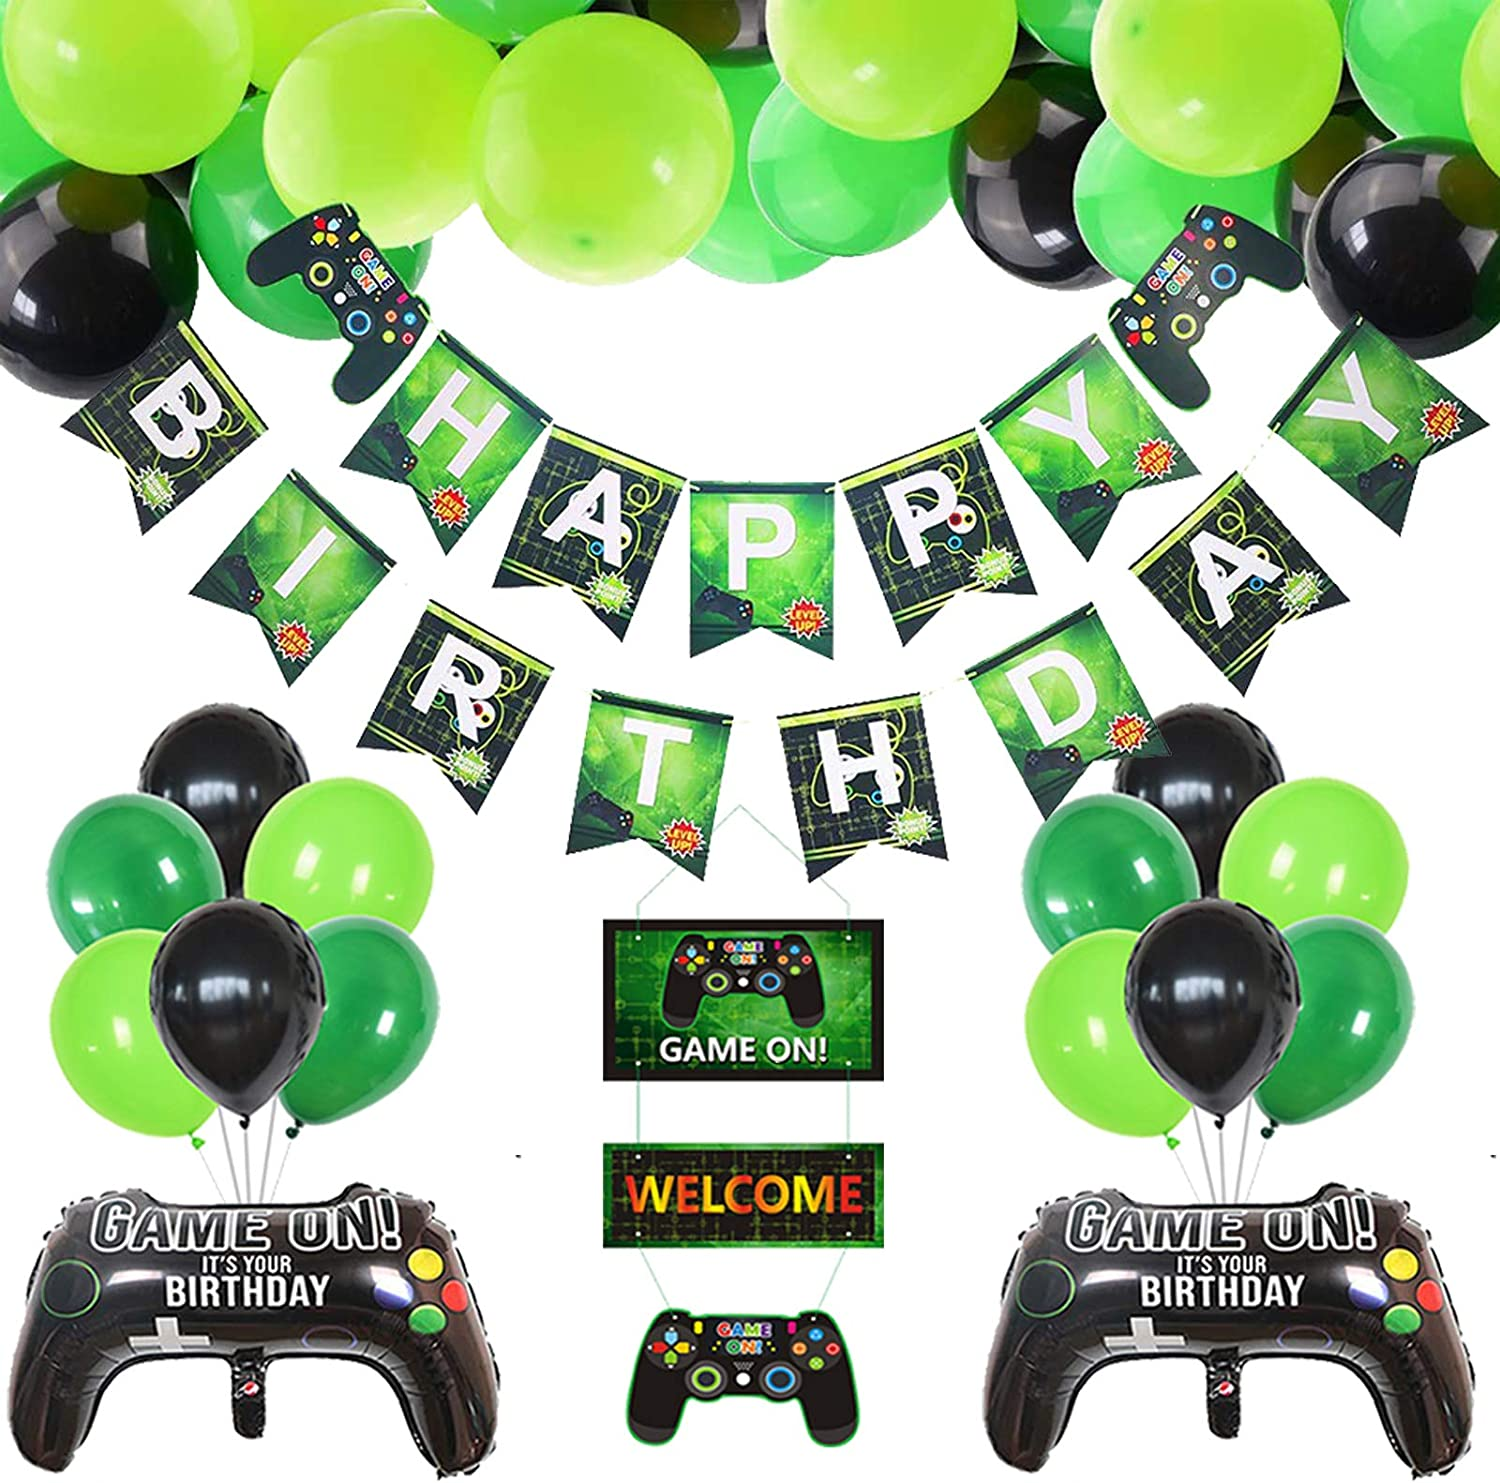 CrzPai Video Game Party Decorations Happy Birthday Gaming Banner GAME ON Welcome Hanging Decor, Gamer Party Supplies Cupcake Toppers Set for Gaming Theme Birthday Party